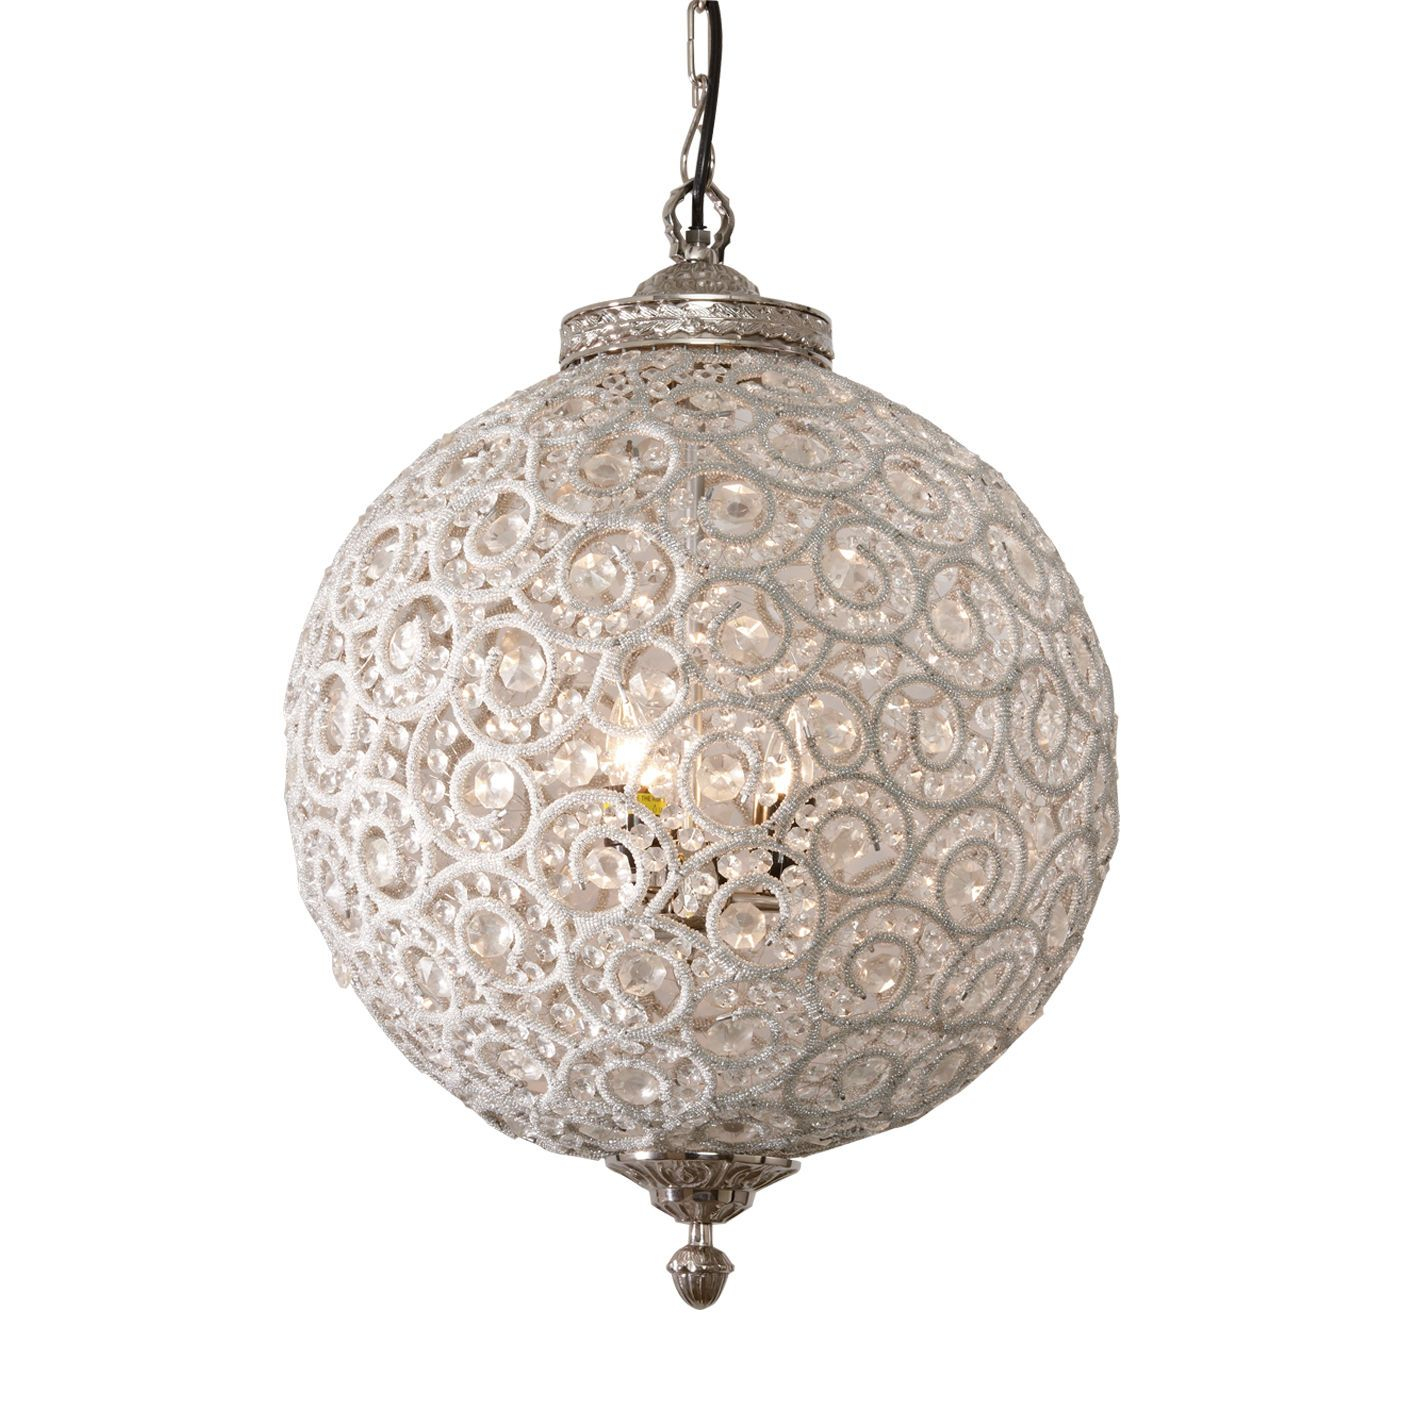 Flowered Ball Chandelier - Ethan Allen Us | Lighting regarding Spokane 1-Light Single Urn Pendants (Image 16 of 30)